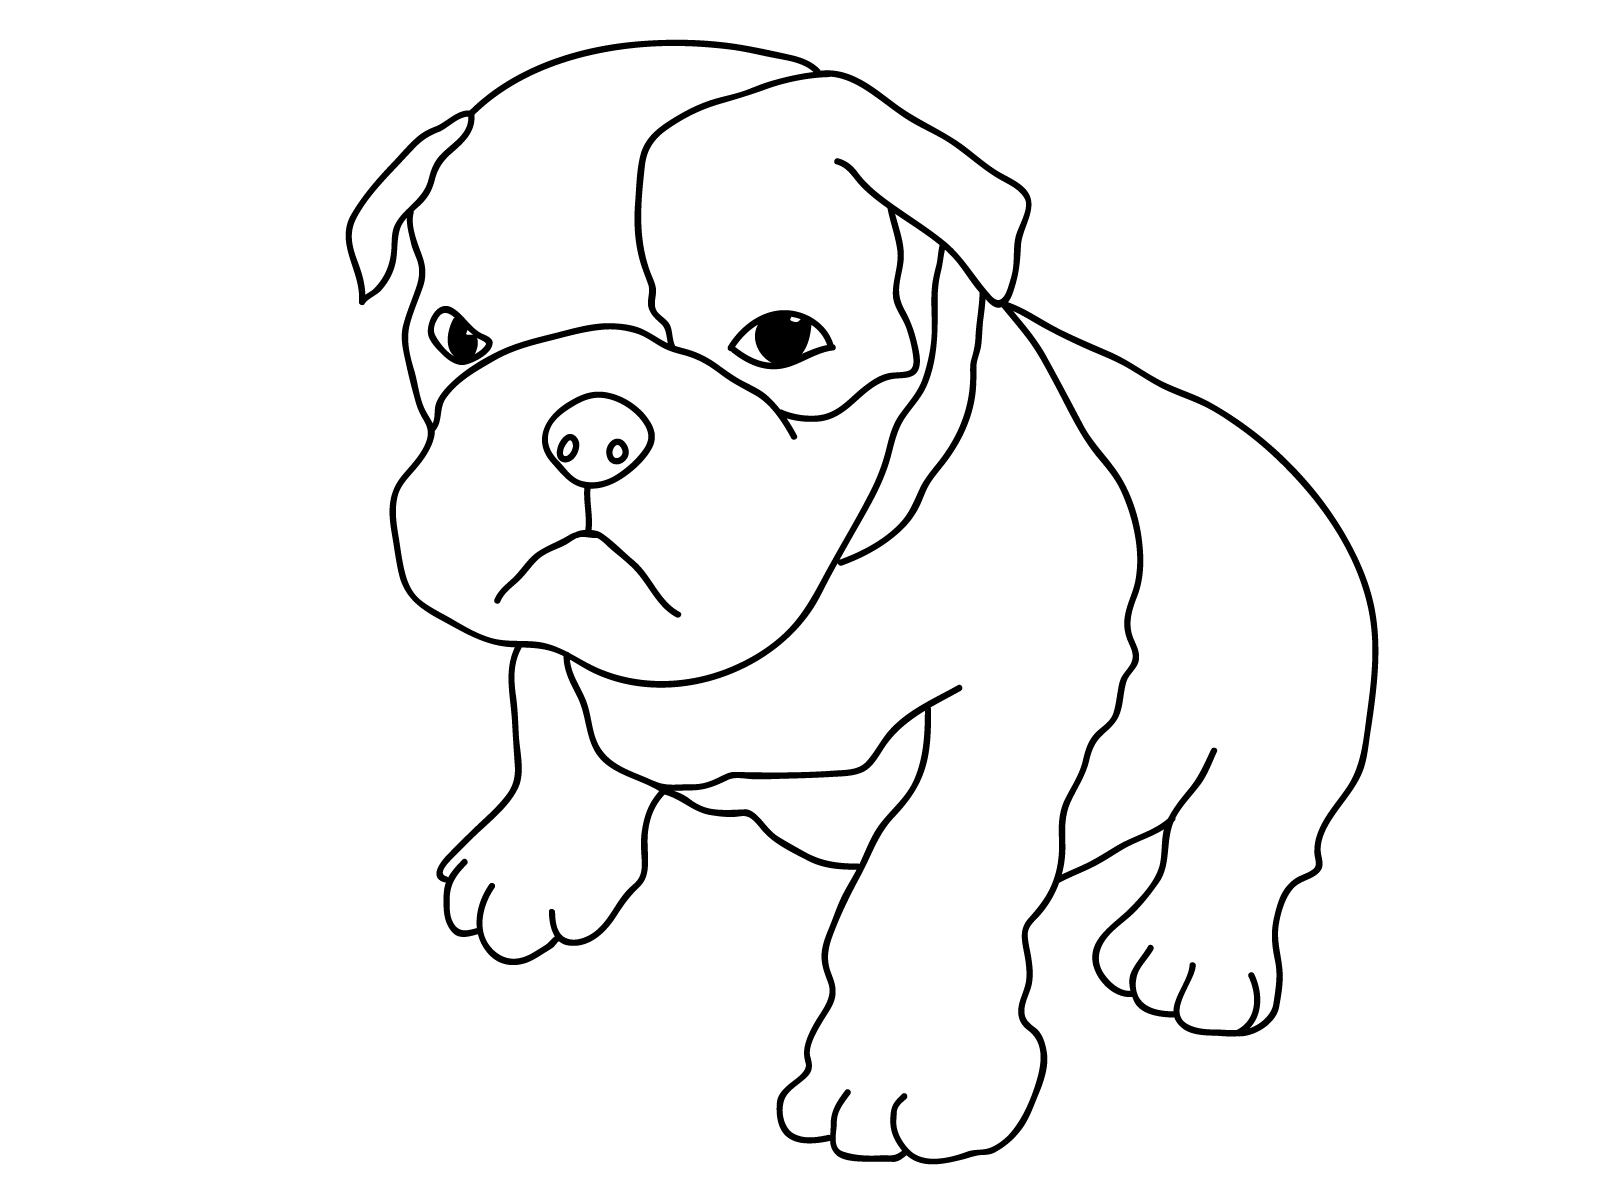 coloring picture of dog best coloring page dog september 2012 picture dog of coloring